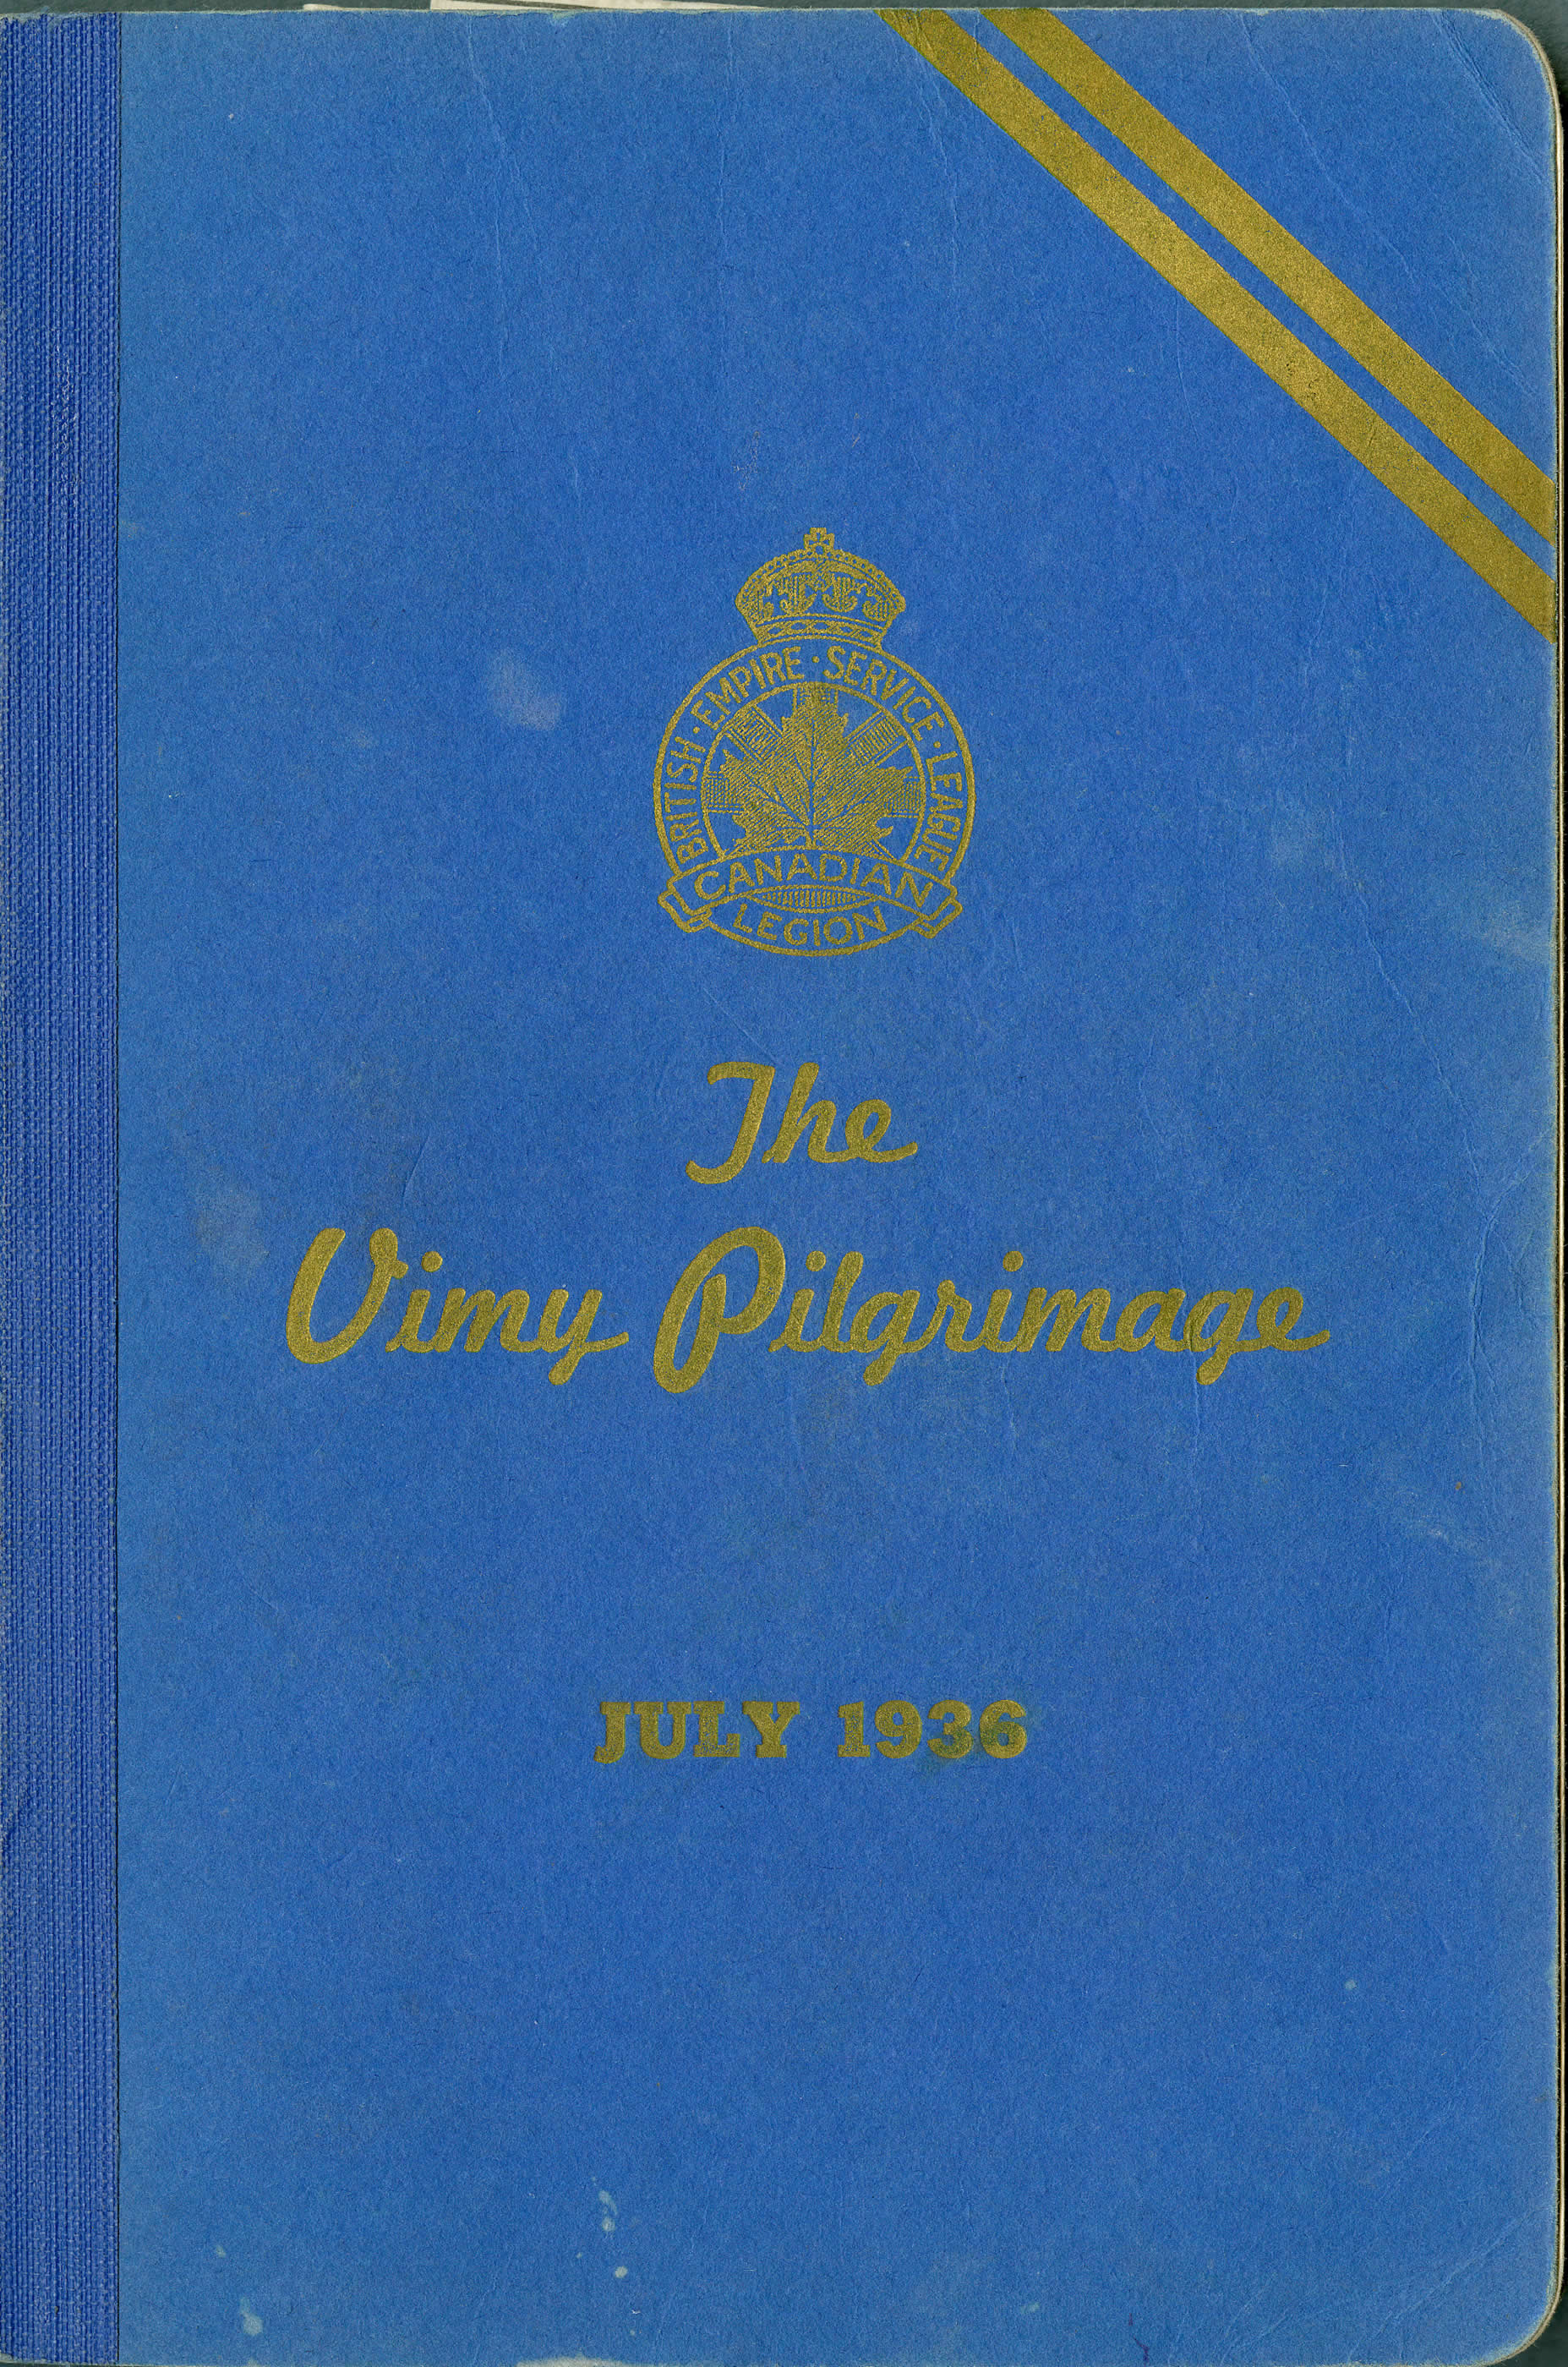 Vimy Pilgrimage Guidebook